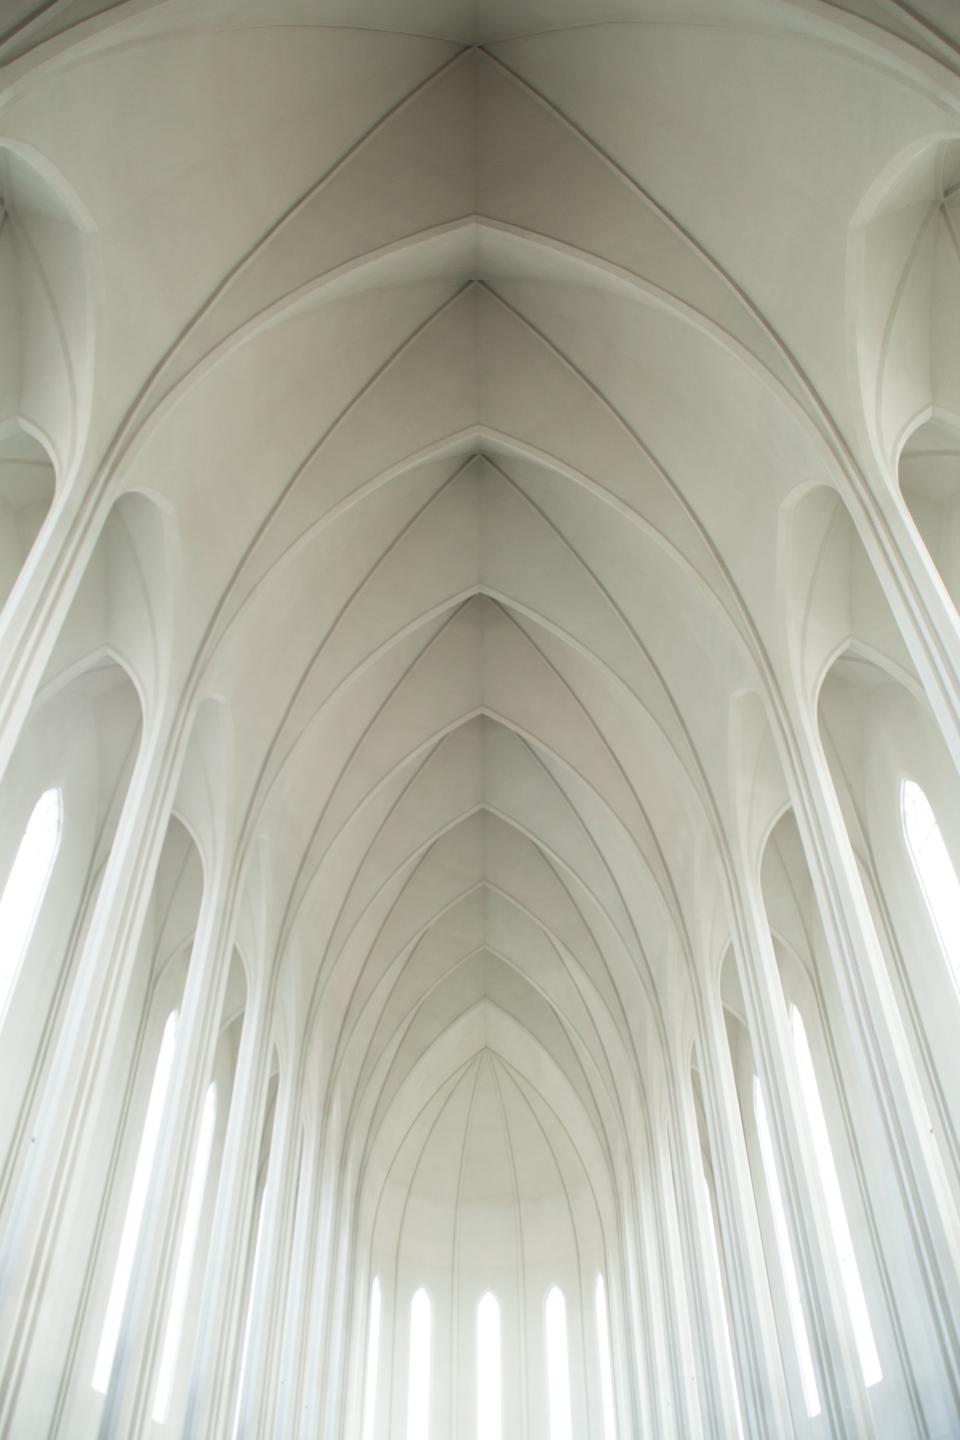 white church arches ceiling sunlight